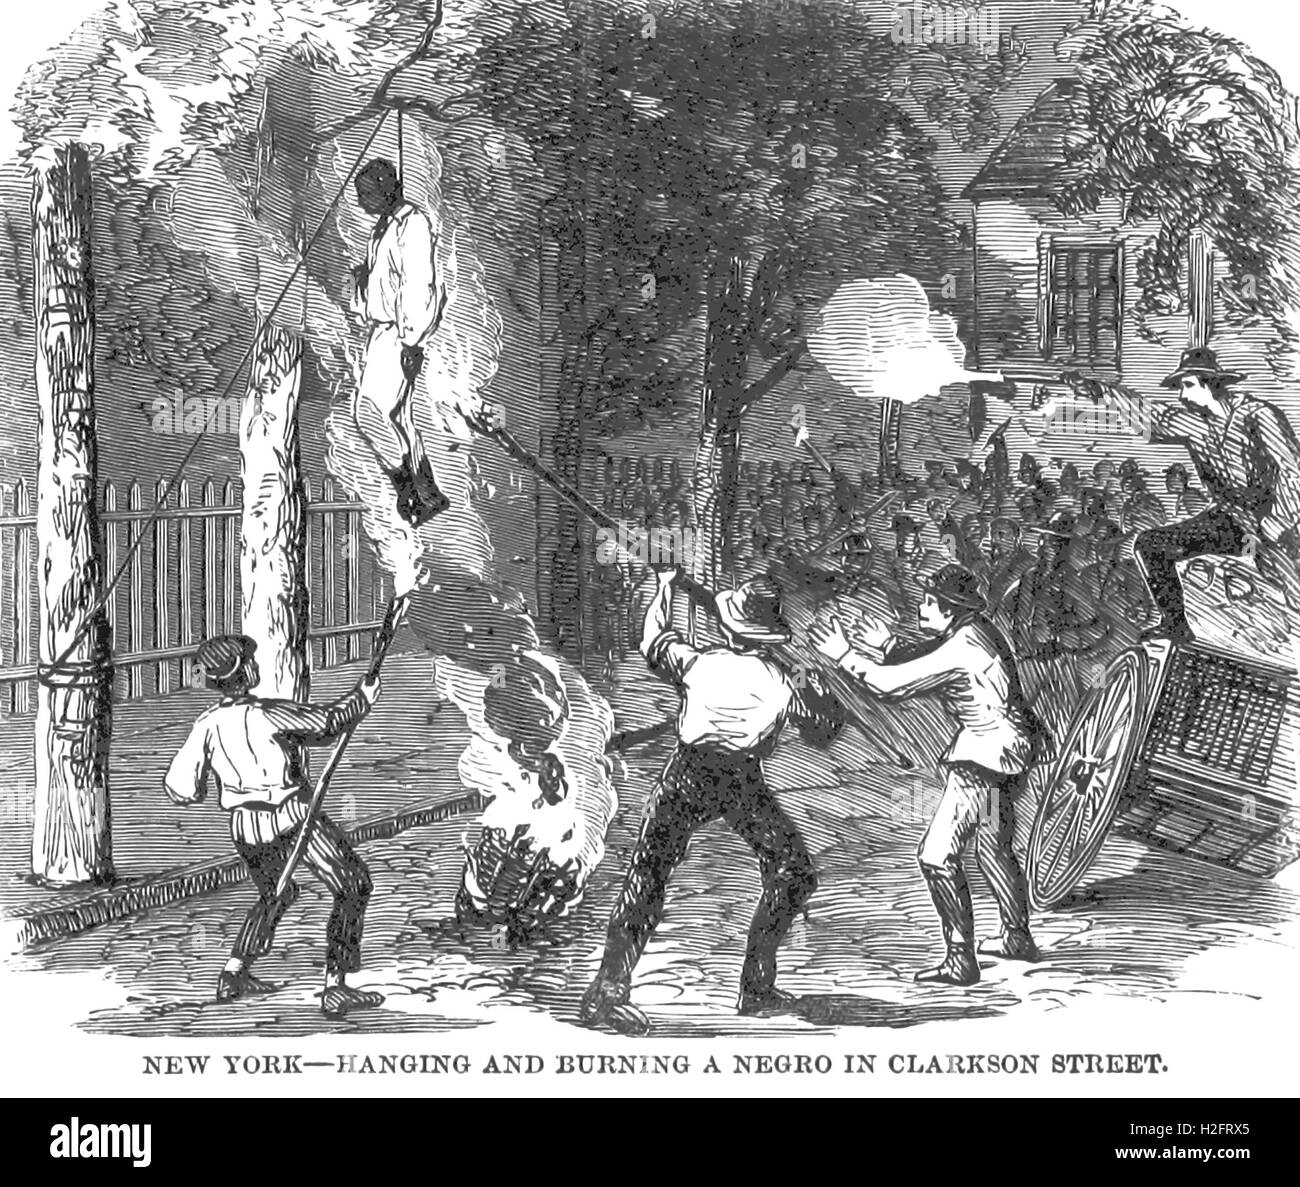 NEW YORK RIOTS   Lynching and burning a negro in Clarkson Street from J.T. Headley's 'Pen and Pencil Sketches - Stock Image